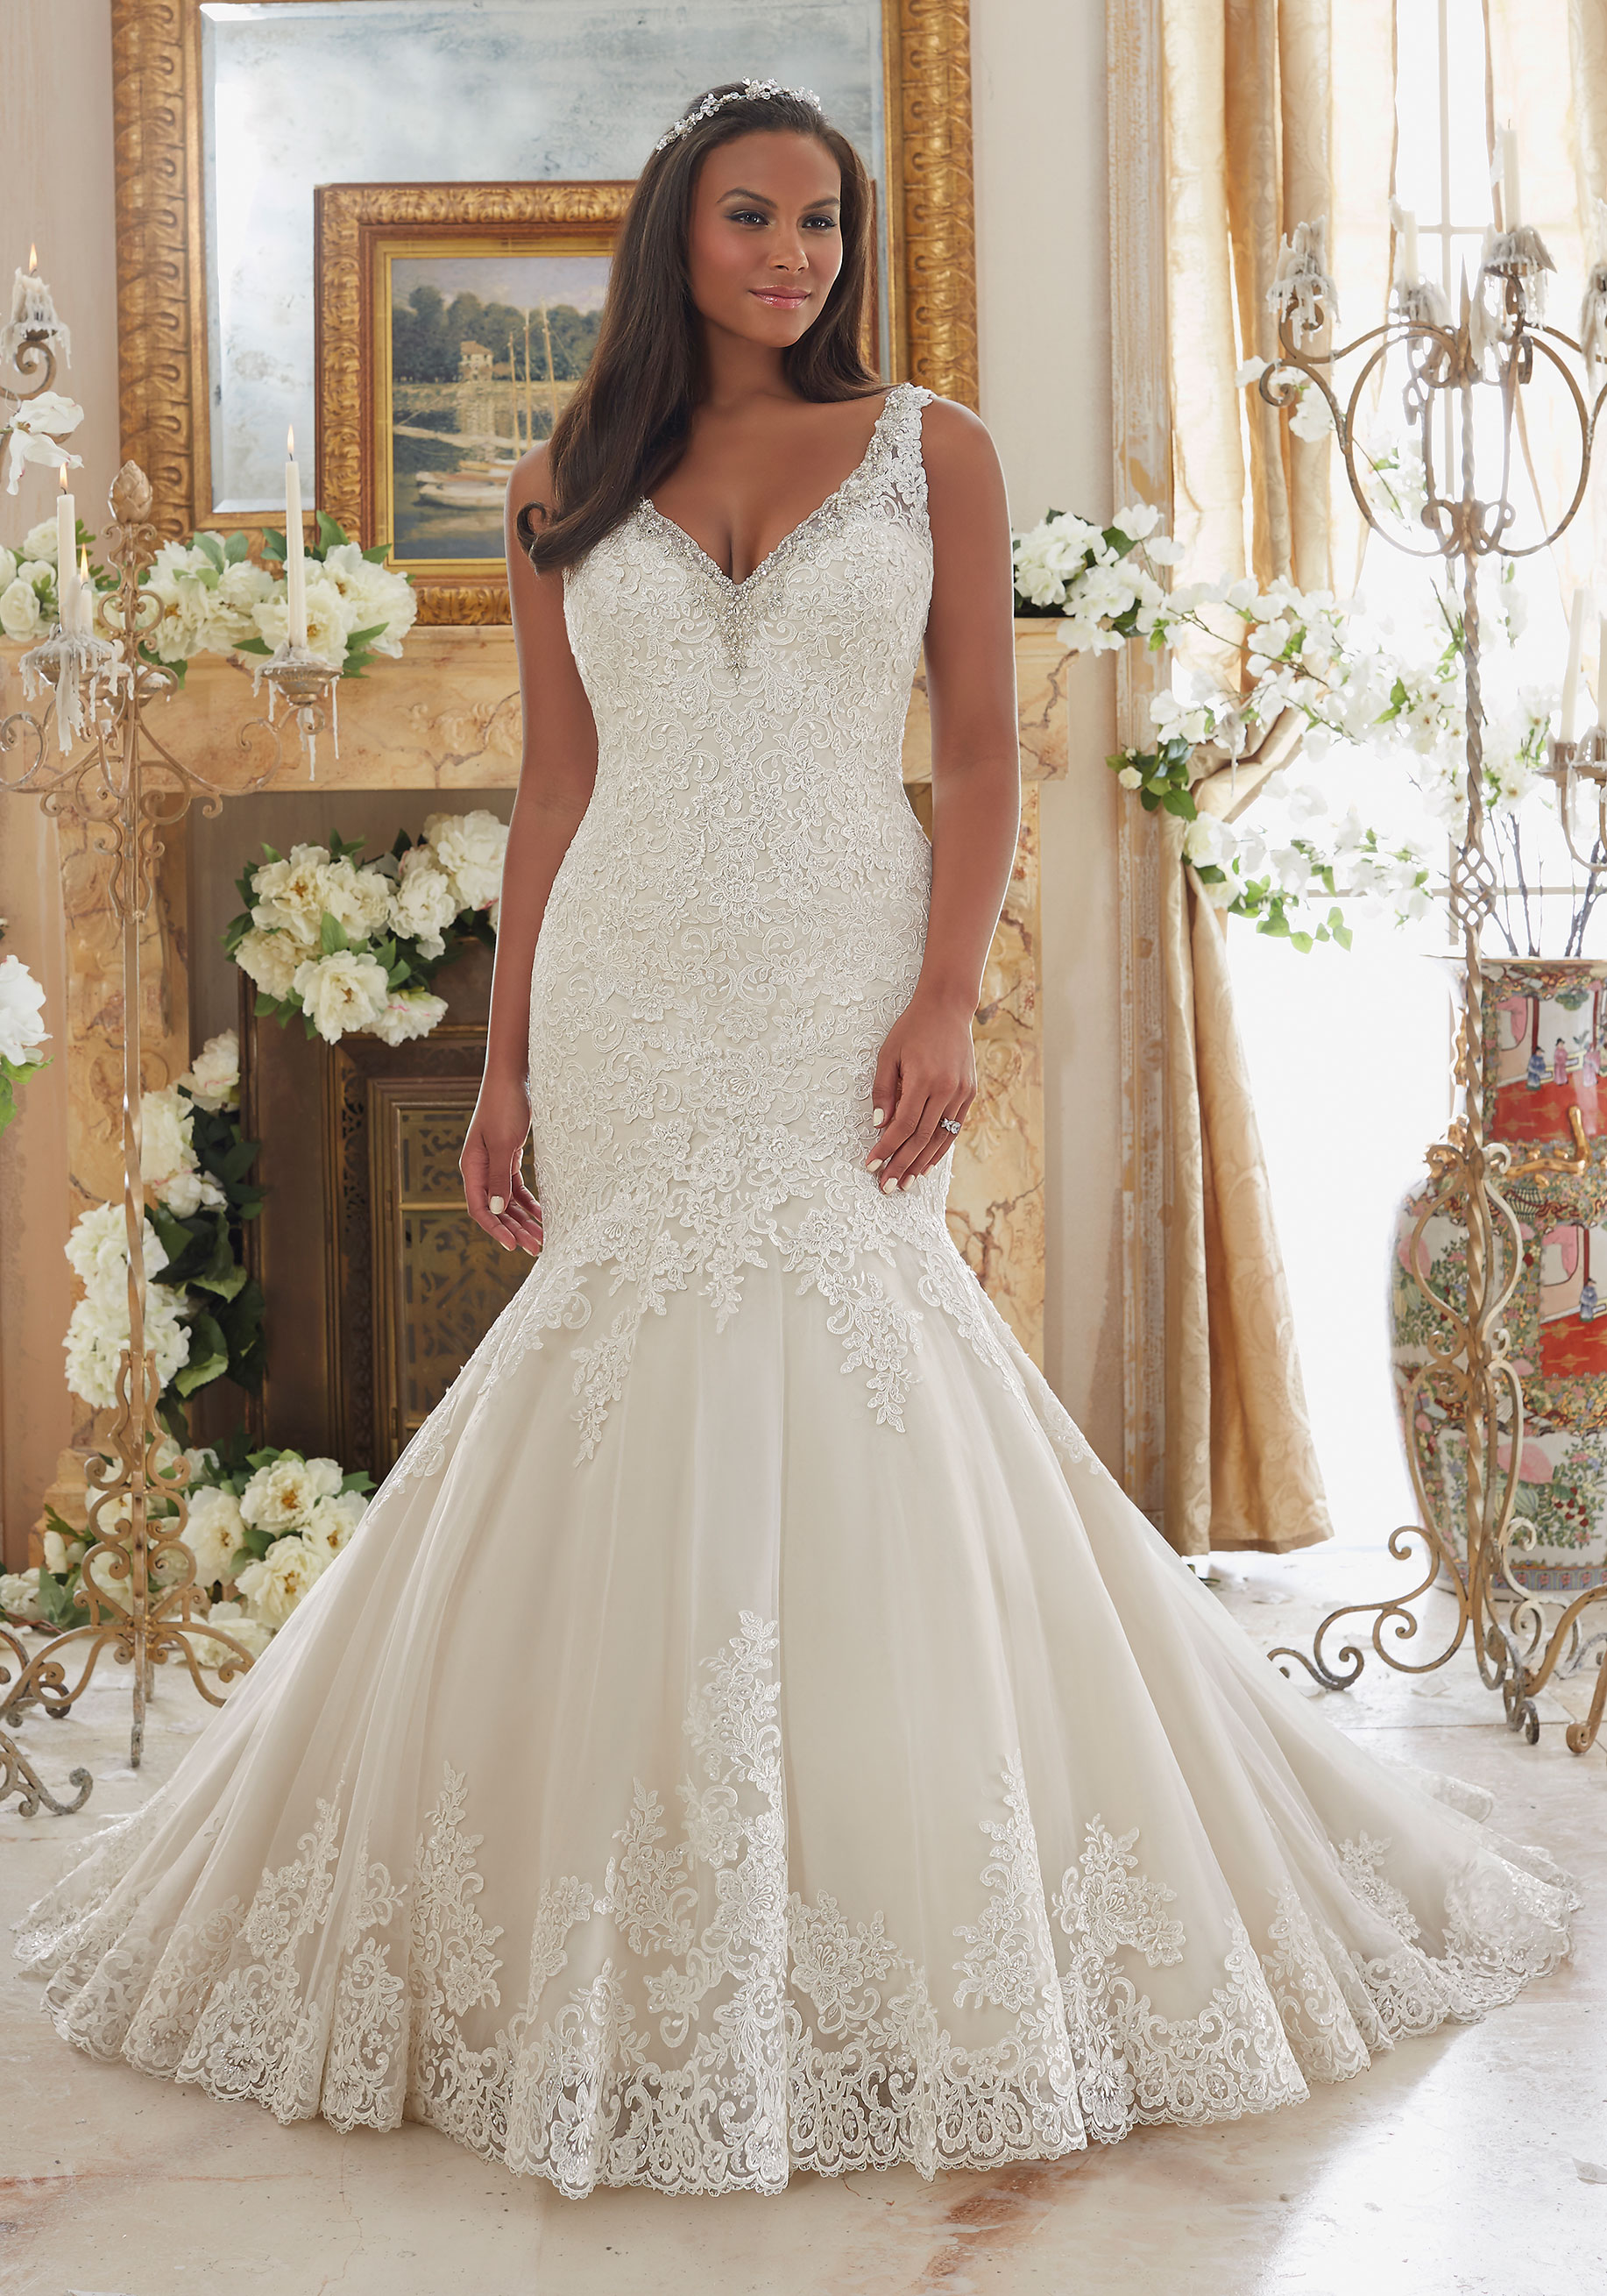 15f5efed9d Mori lee 3204 wedding dress - Catrinas Bridal